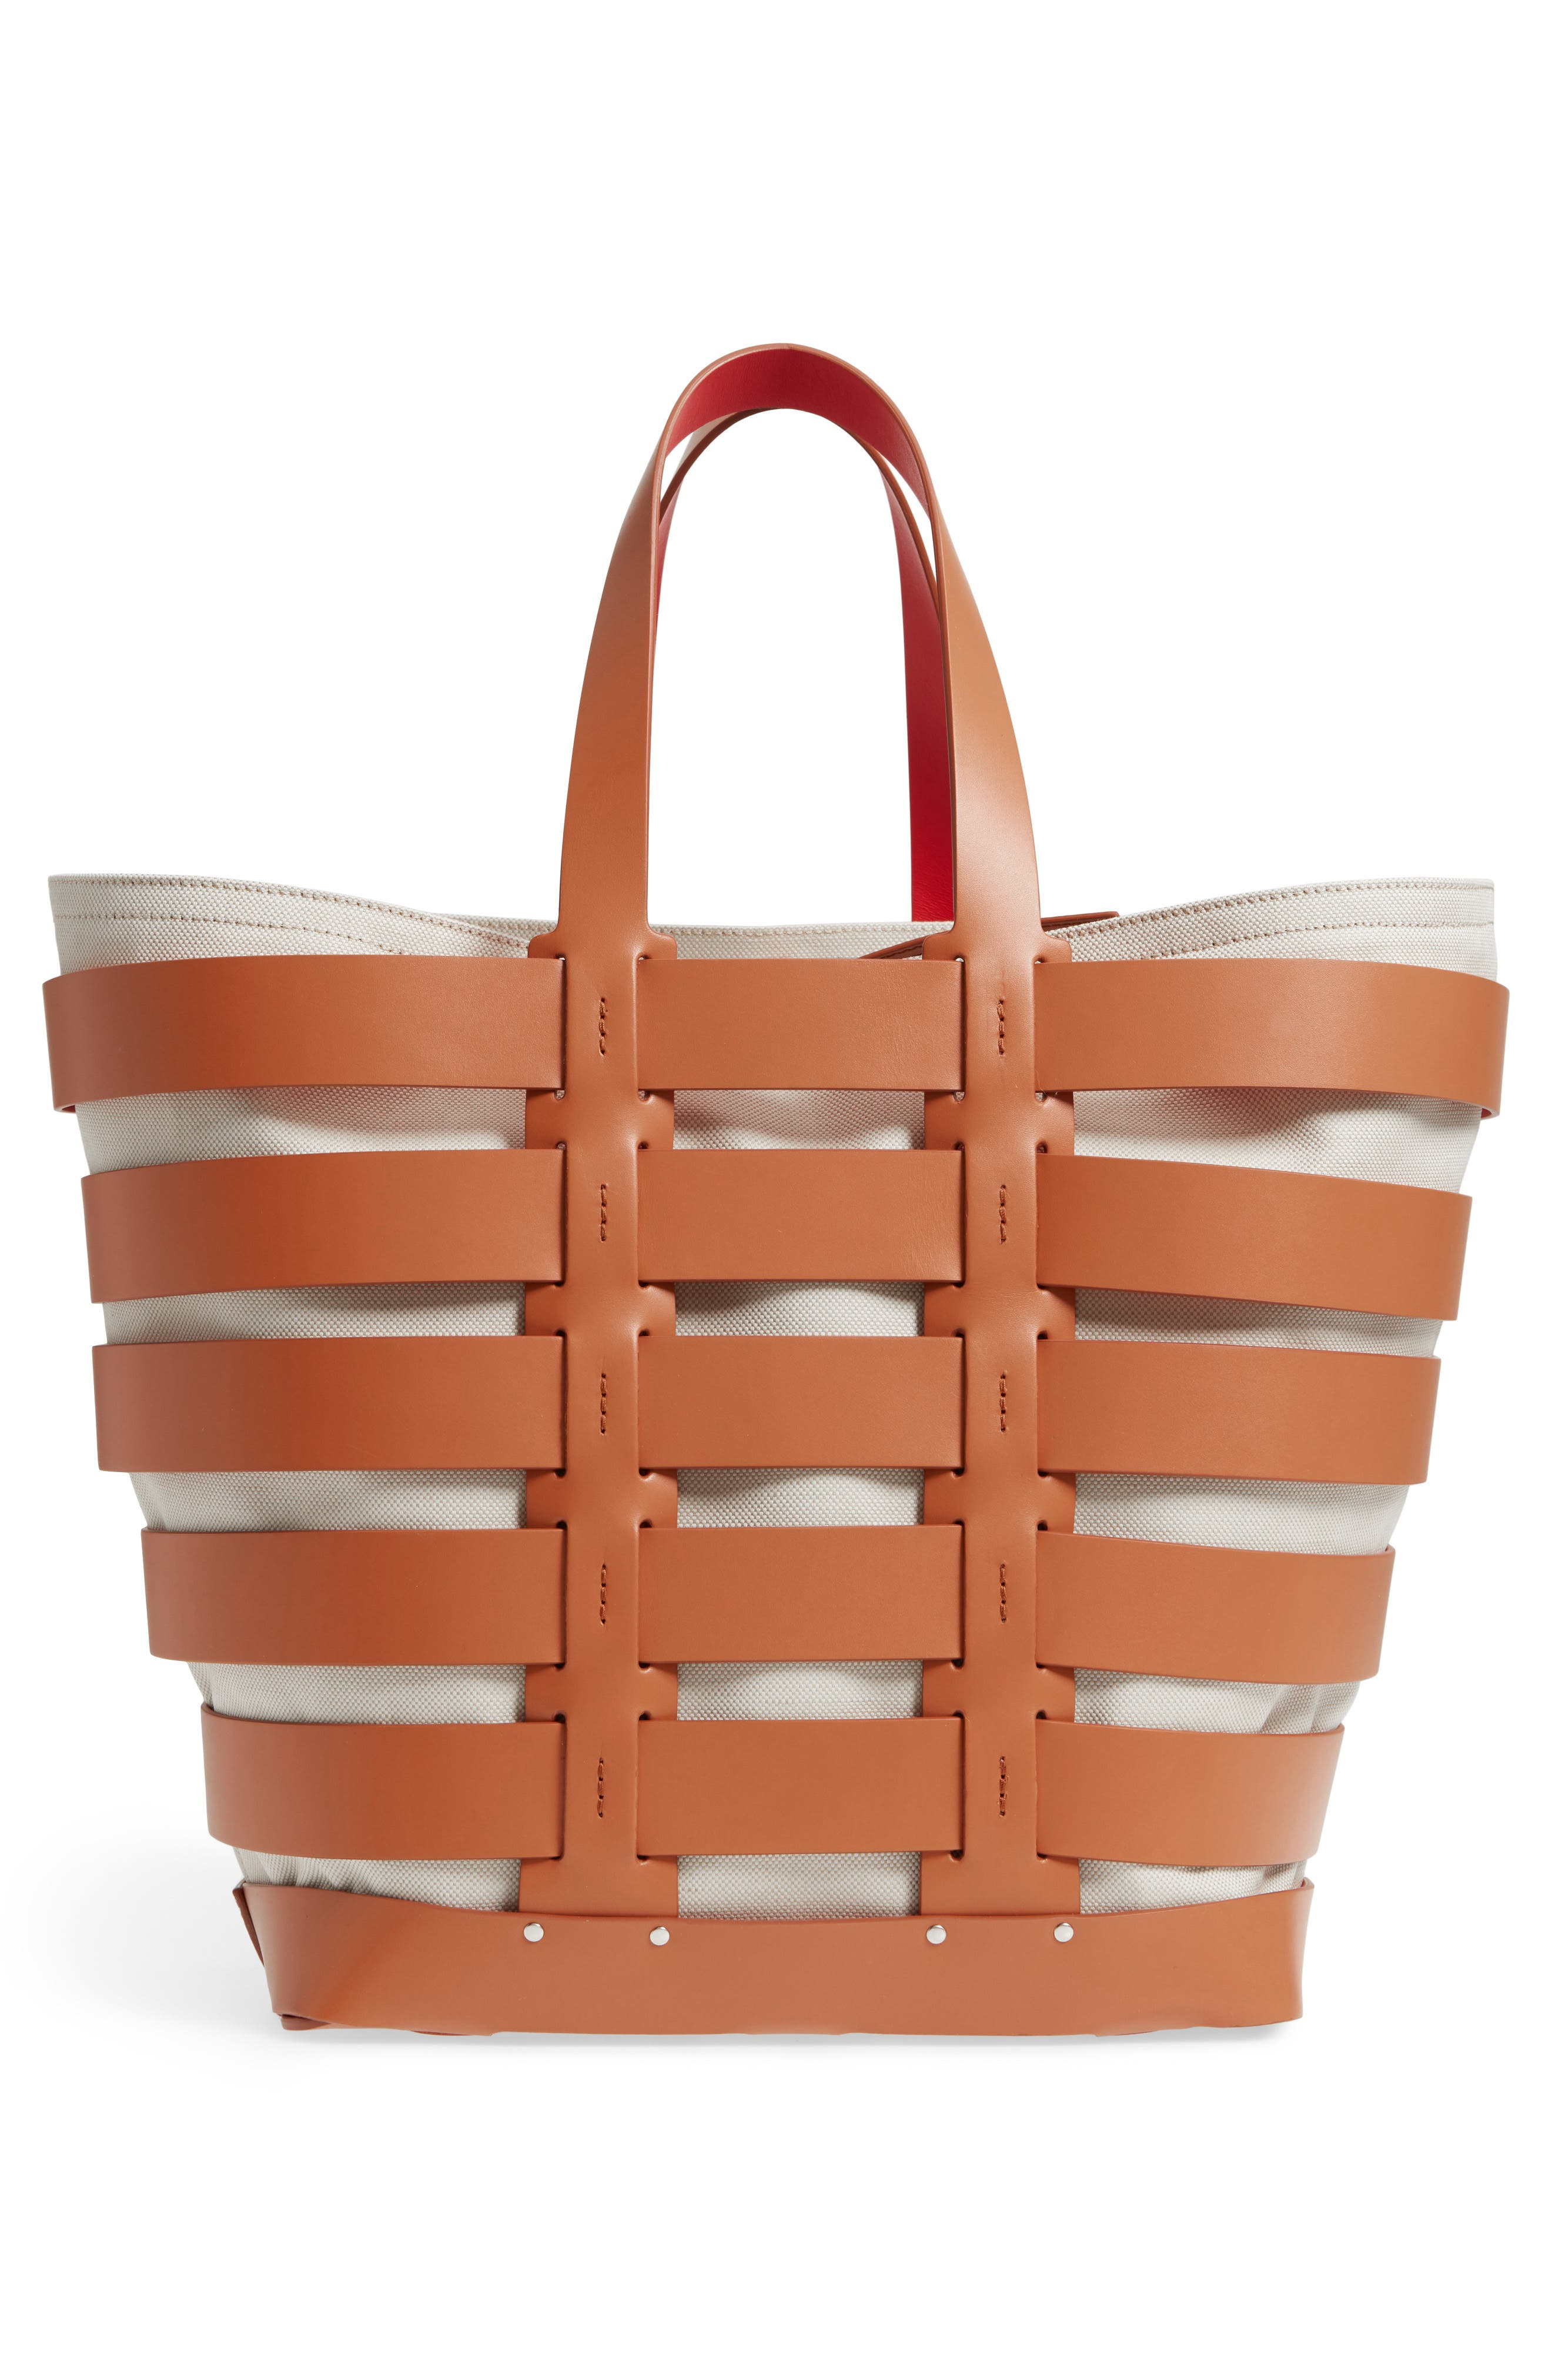 Cage Leather & Canvas Tote,                             Alternate thumbnail 3, color,                             CAMEL